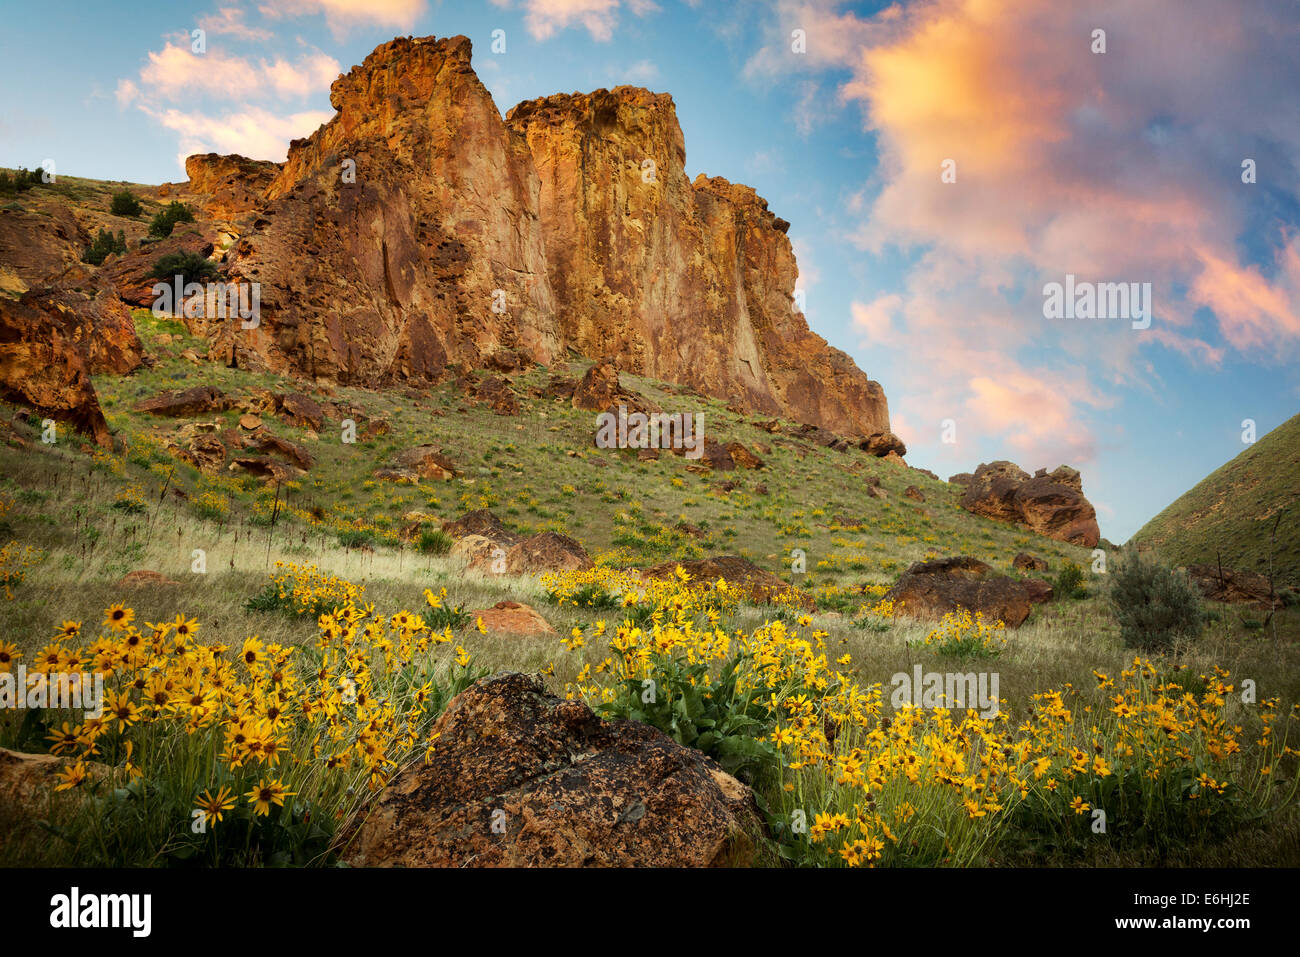 Balsamroot wildflowers and rock formations in Leslie Gultch. Malhuer County, Oregon - Stock Image